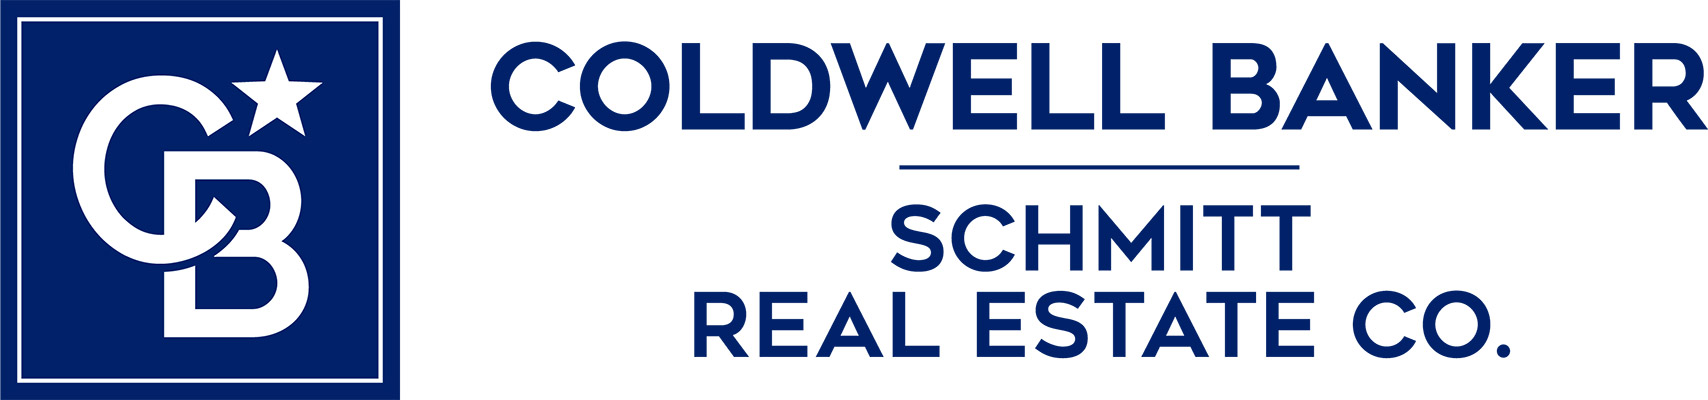 Patricia Nickless - Coldwell Banker Logo